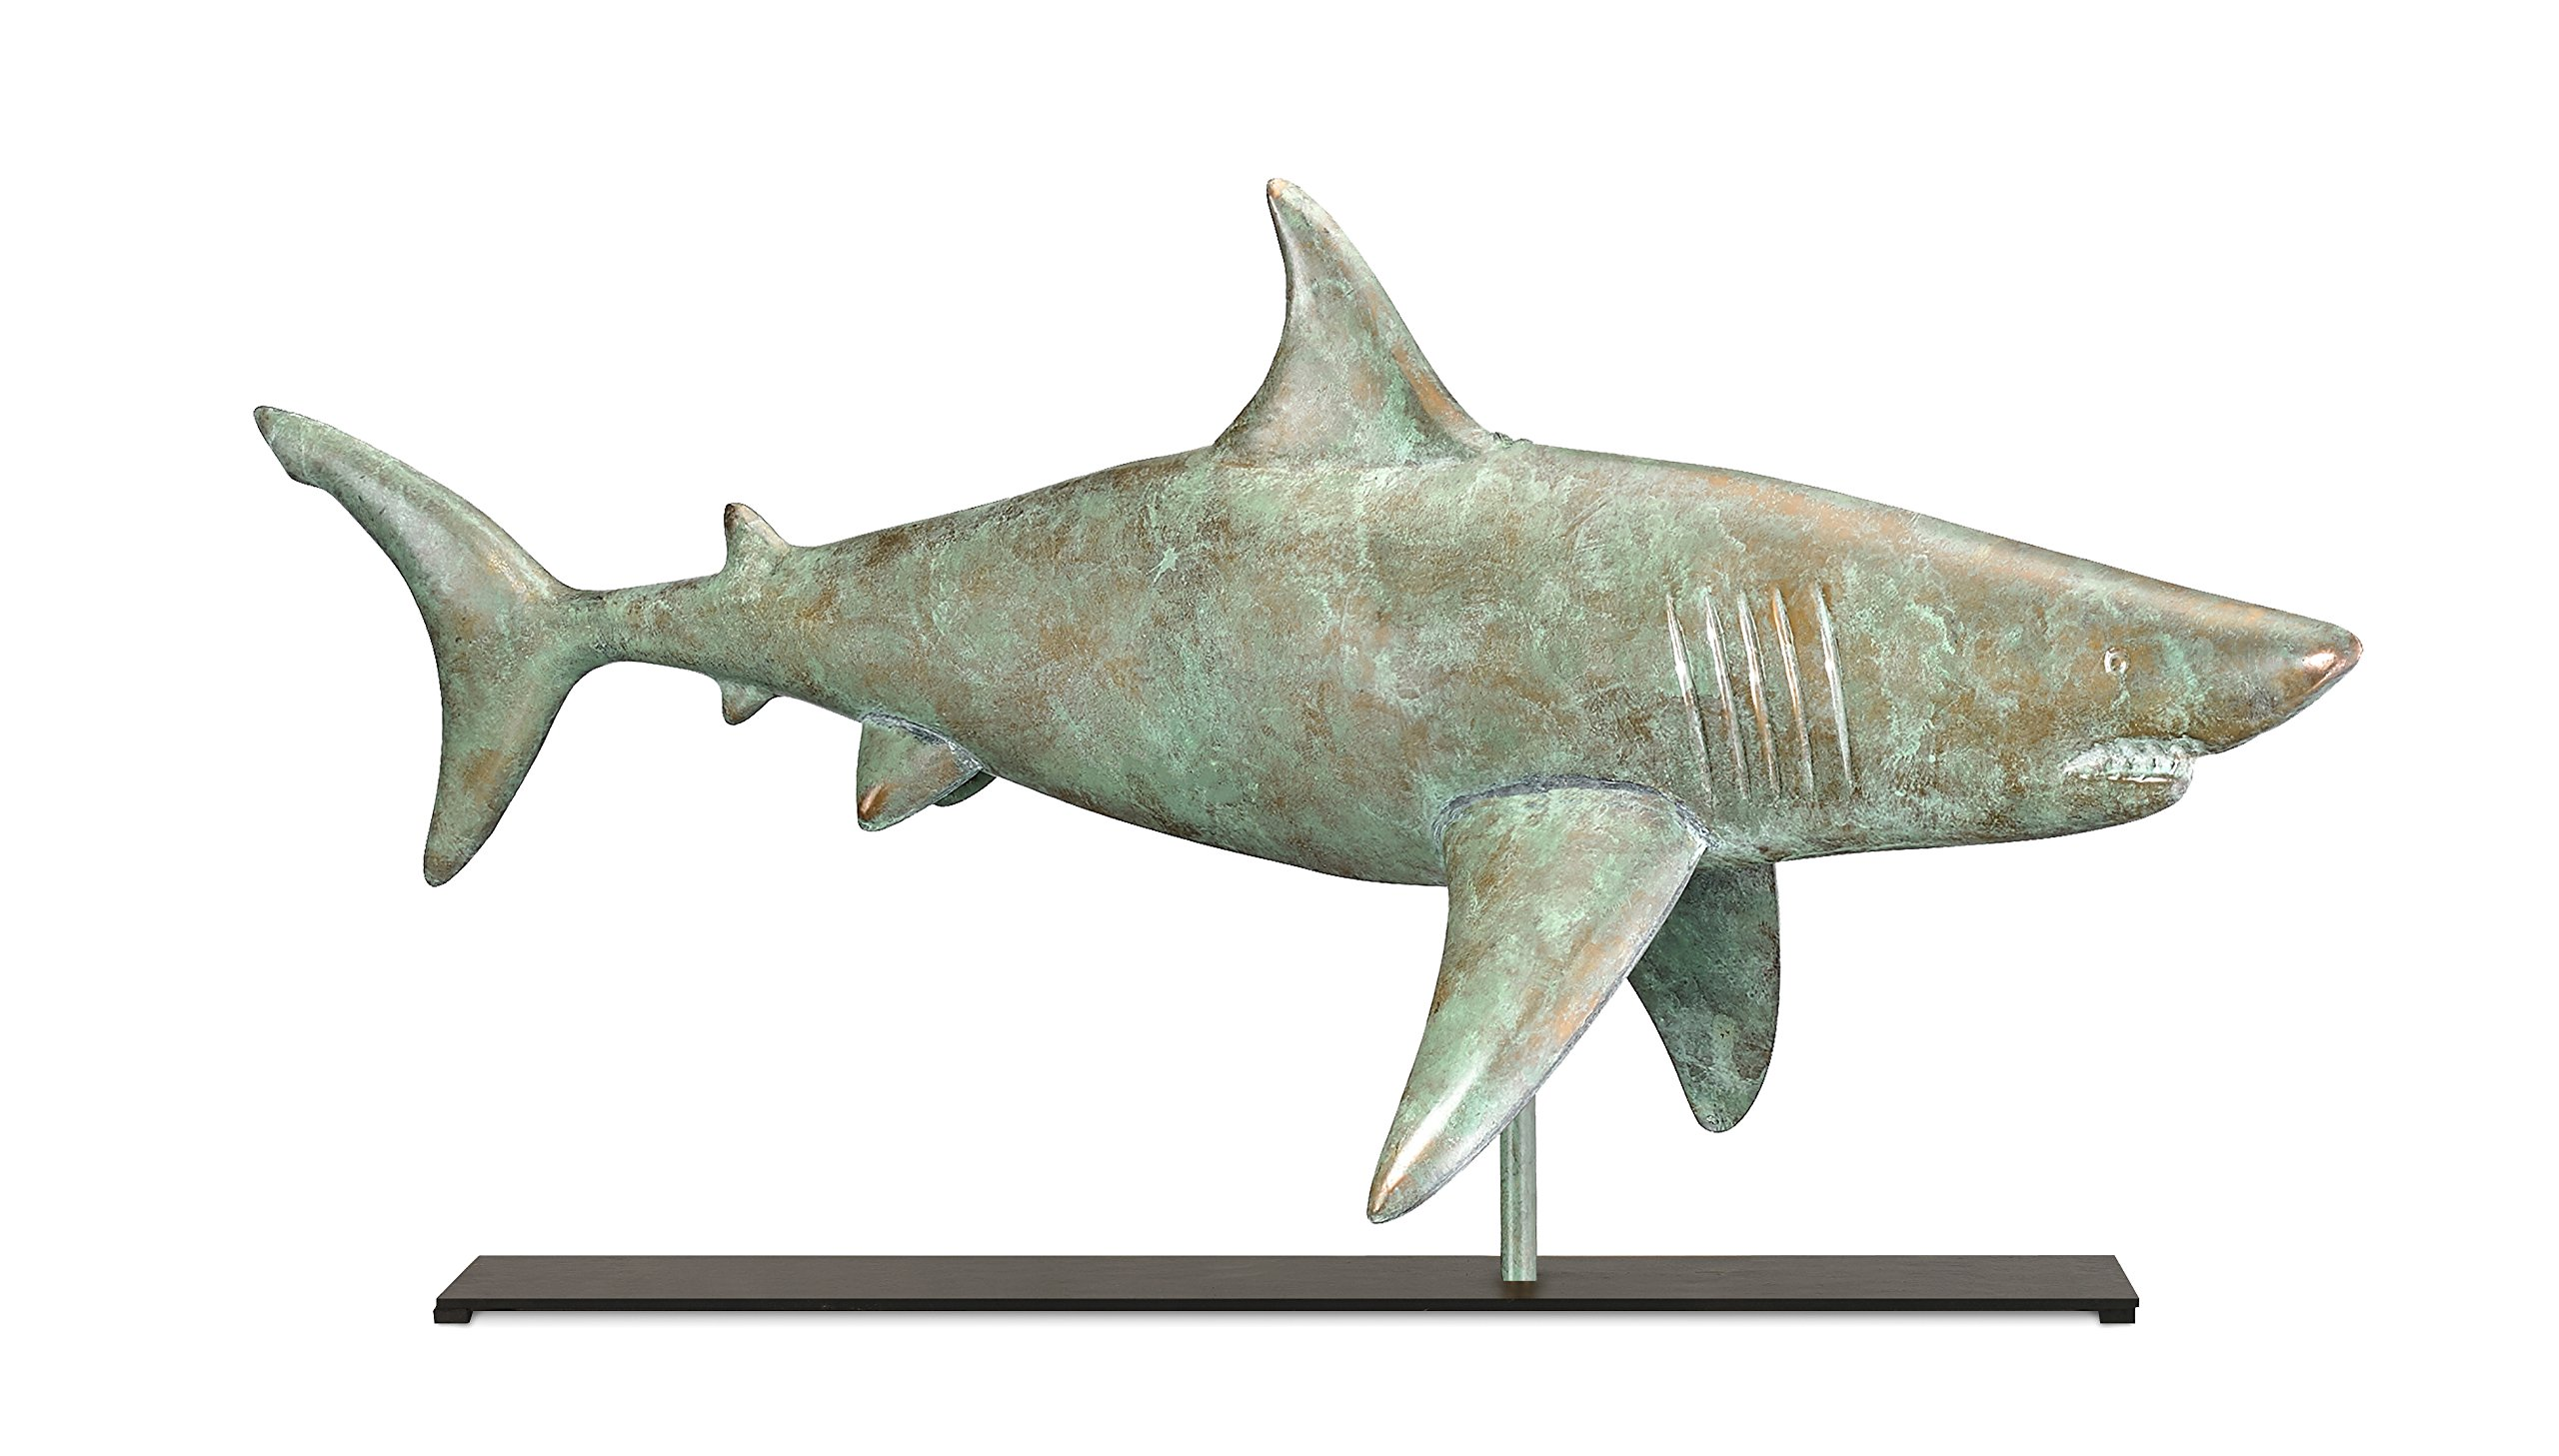 Good Directions Shark Weathervane Sculpture on Mantel / Fireplace Stand, Blue Verde Pure Copper, Nautical Home Décor, Tabletop Accent by Good Directions